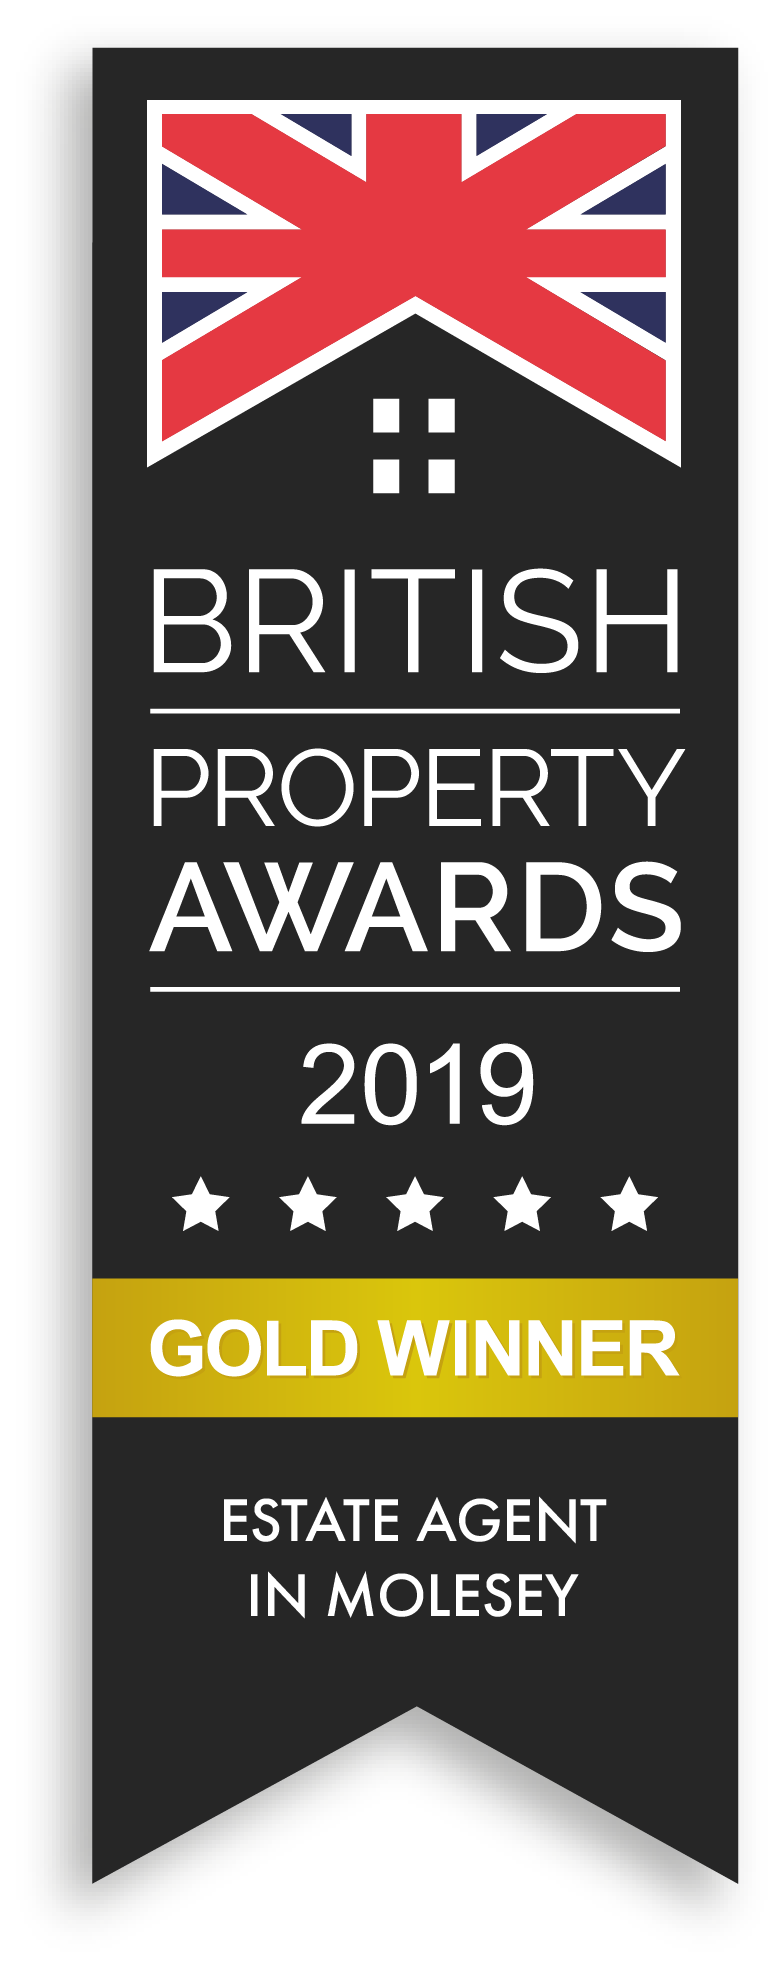 British Property Awards 2019 Gold Winner Estate Agent In Molesey